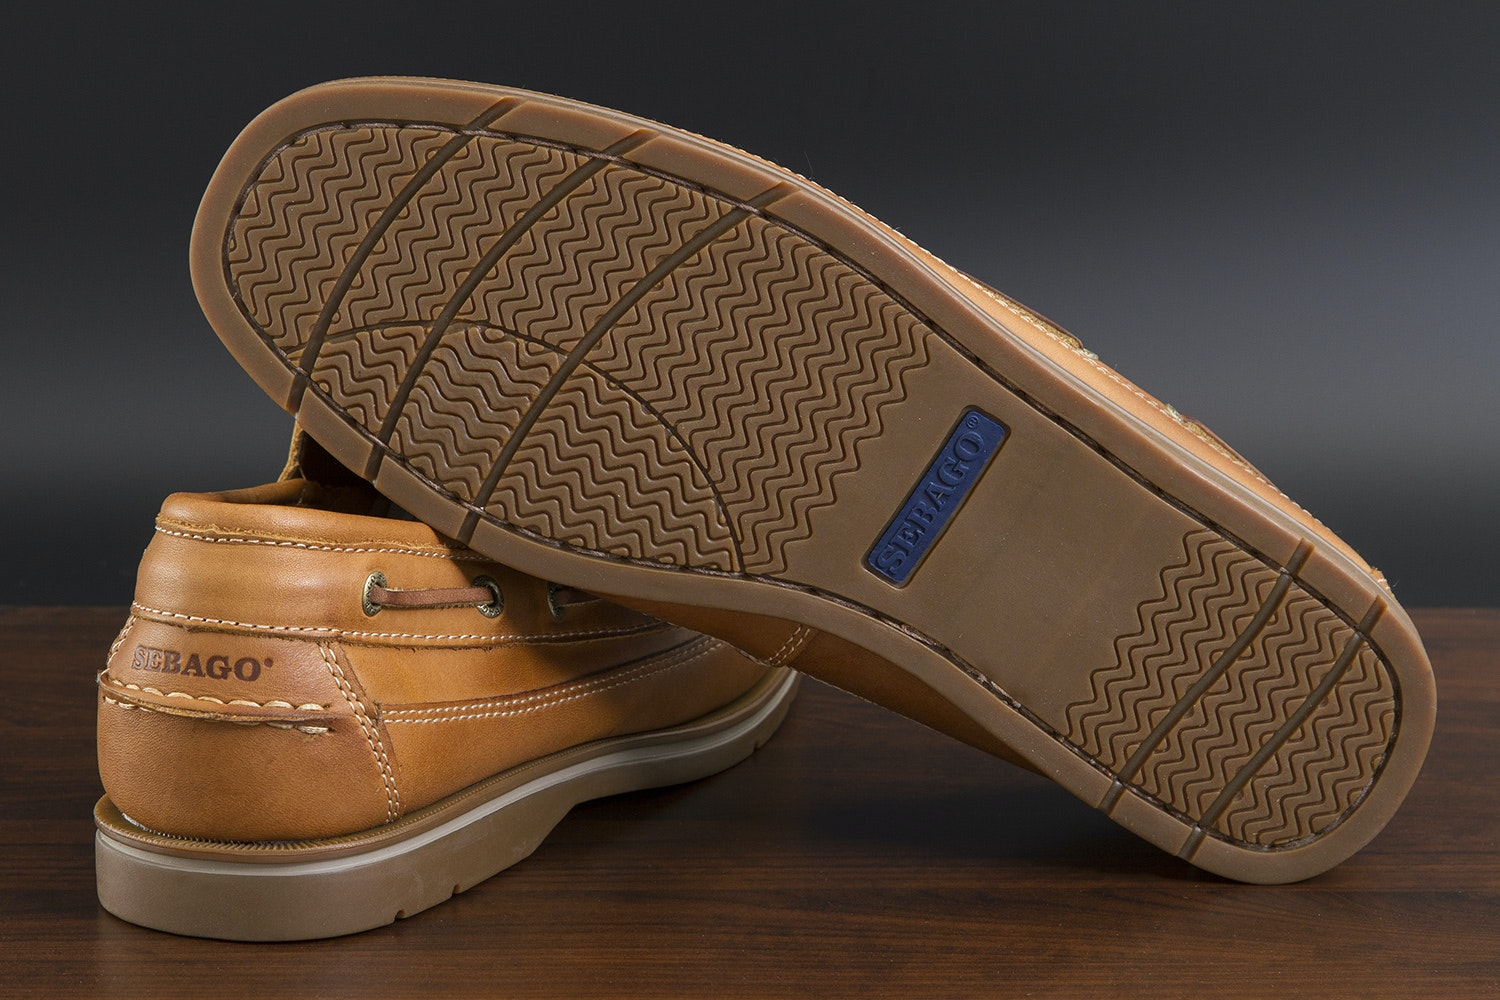 Sebago Grinder Boat Shoes